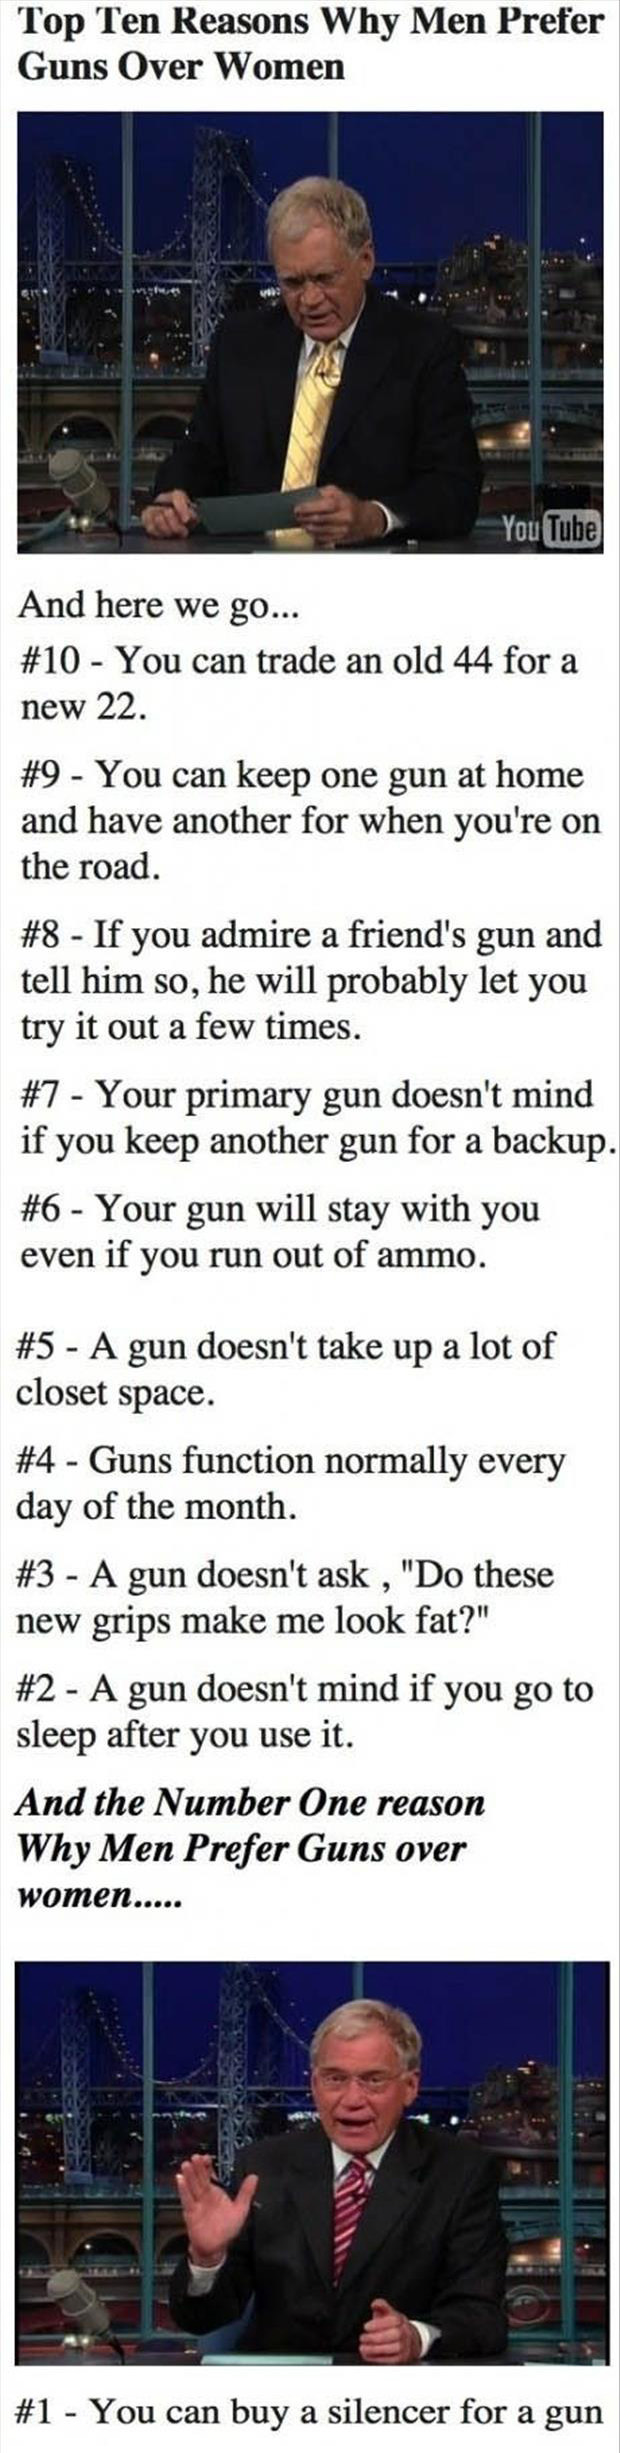 z top ten reasons men prefer guns over women david letterman show top ten lists